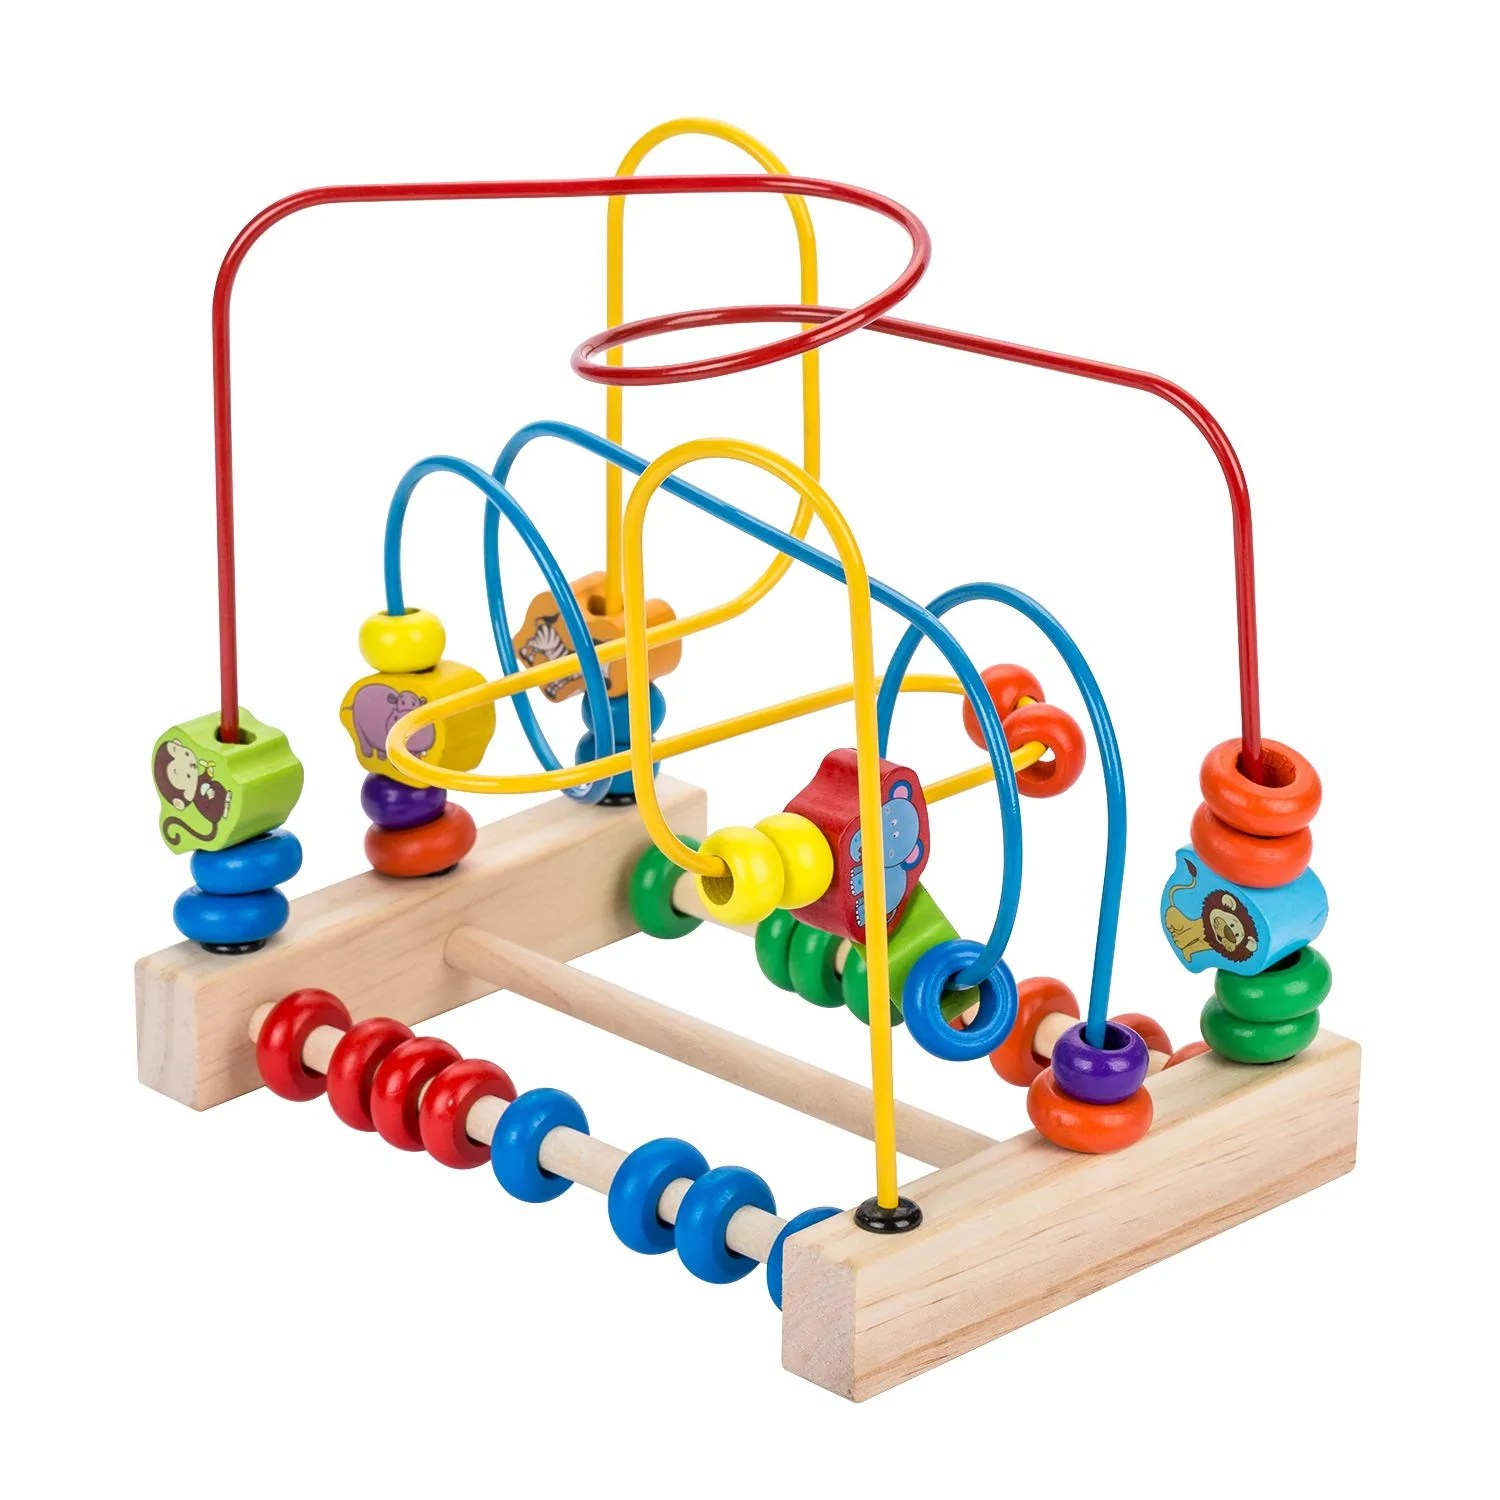 Other Toys Komorebi Wooden Animal Beads Maze Game